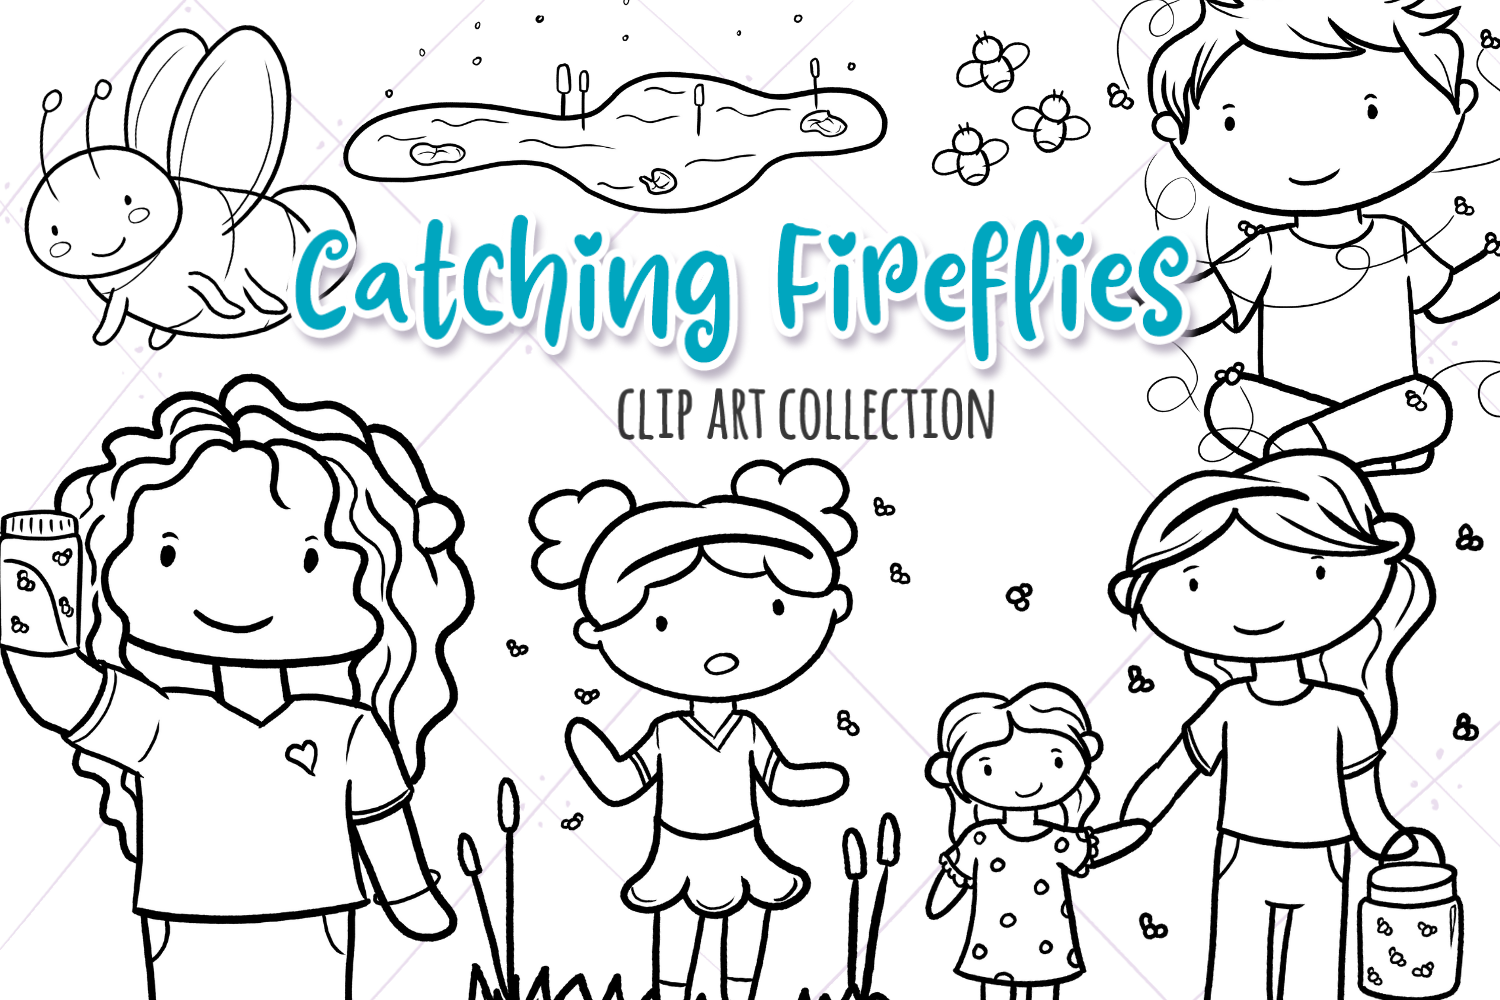 Download Free Catching Fireflies Black And White Graphic By for Cricut Explore, Silhouette and other cutting machines.